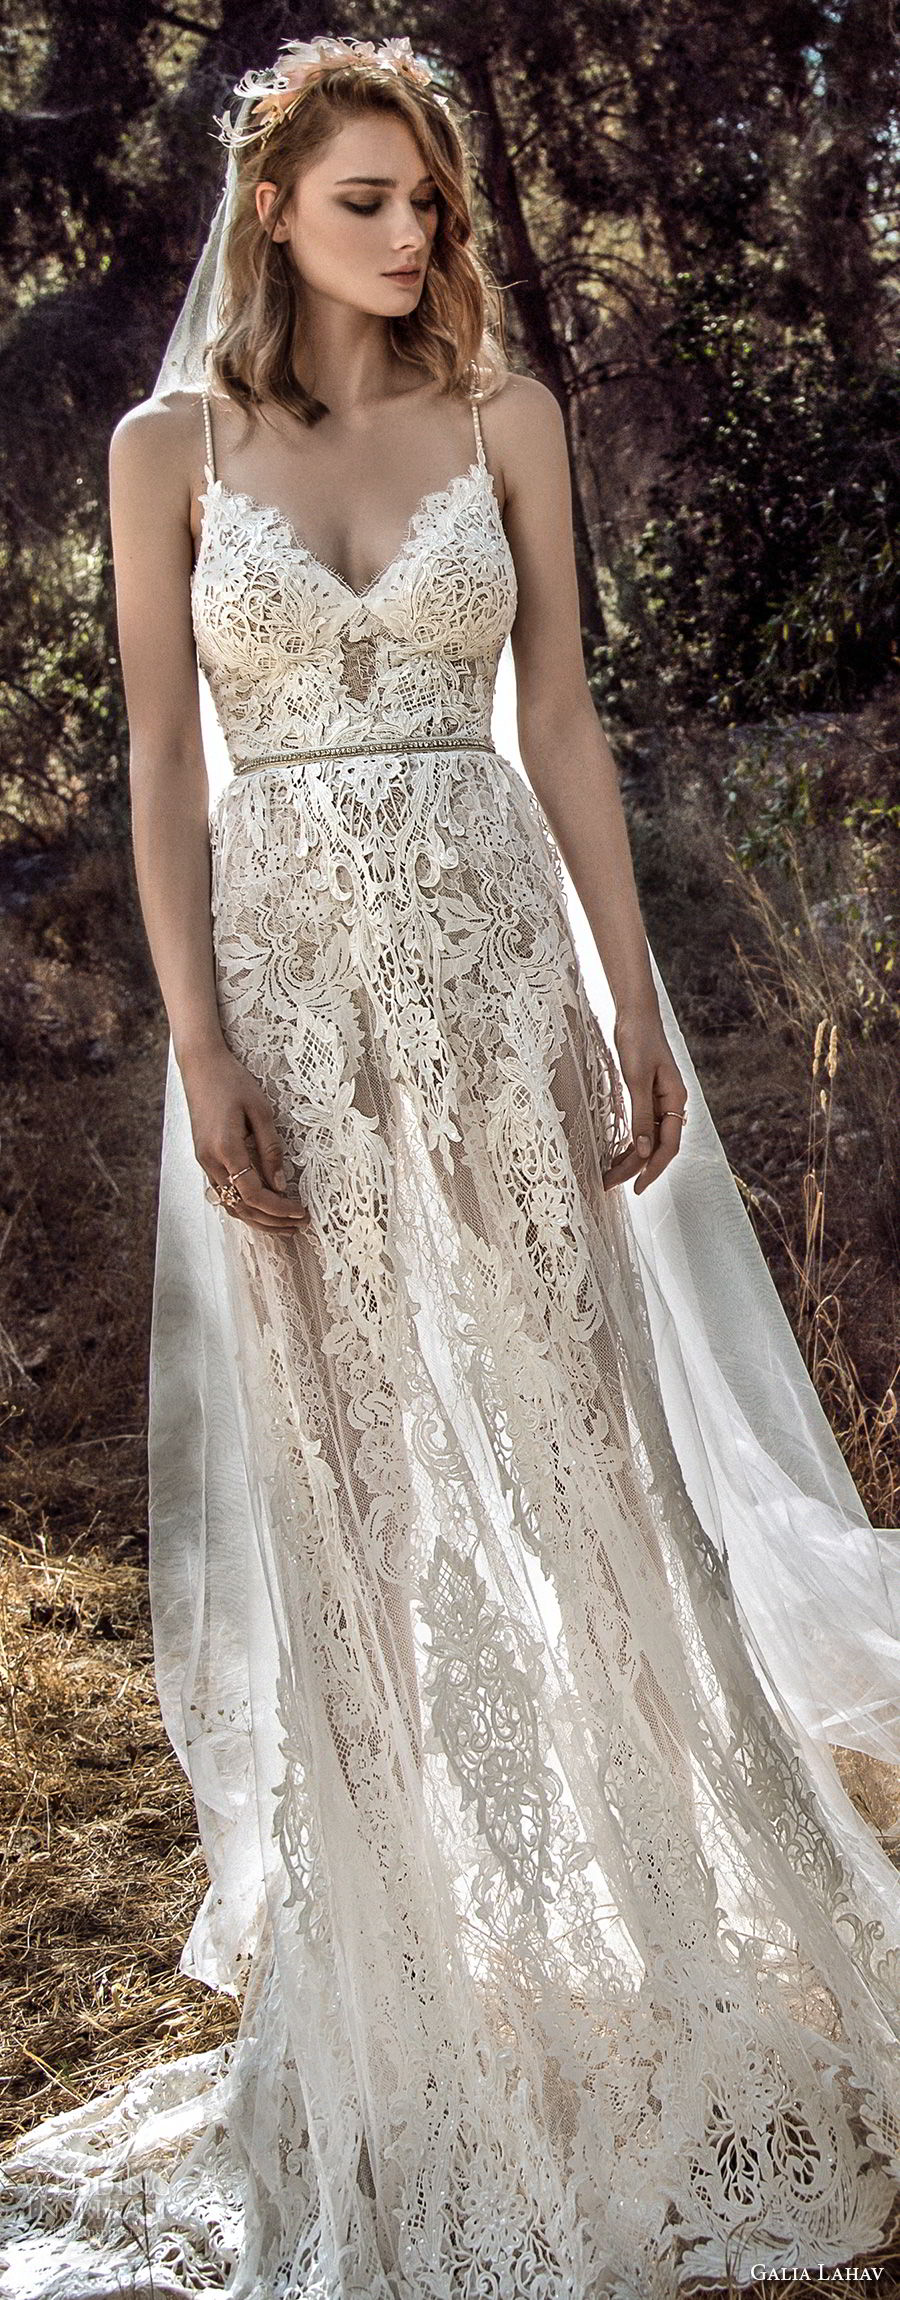 galia lahav gala 4 2018 bridal sleeveless spaghetti strap sweetheart neckline full embellishment romantic soft a  line wedding dress open back sweep train (911) lv